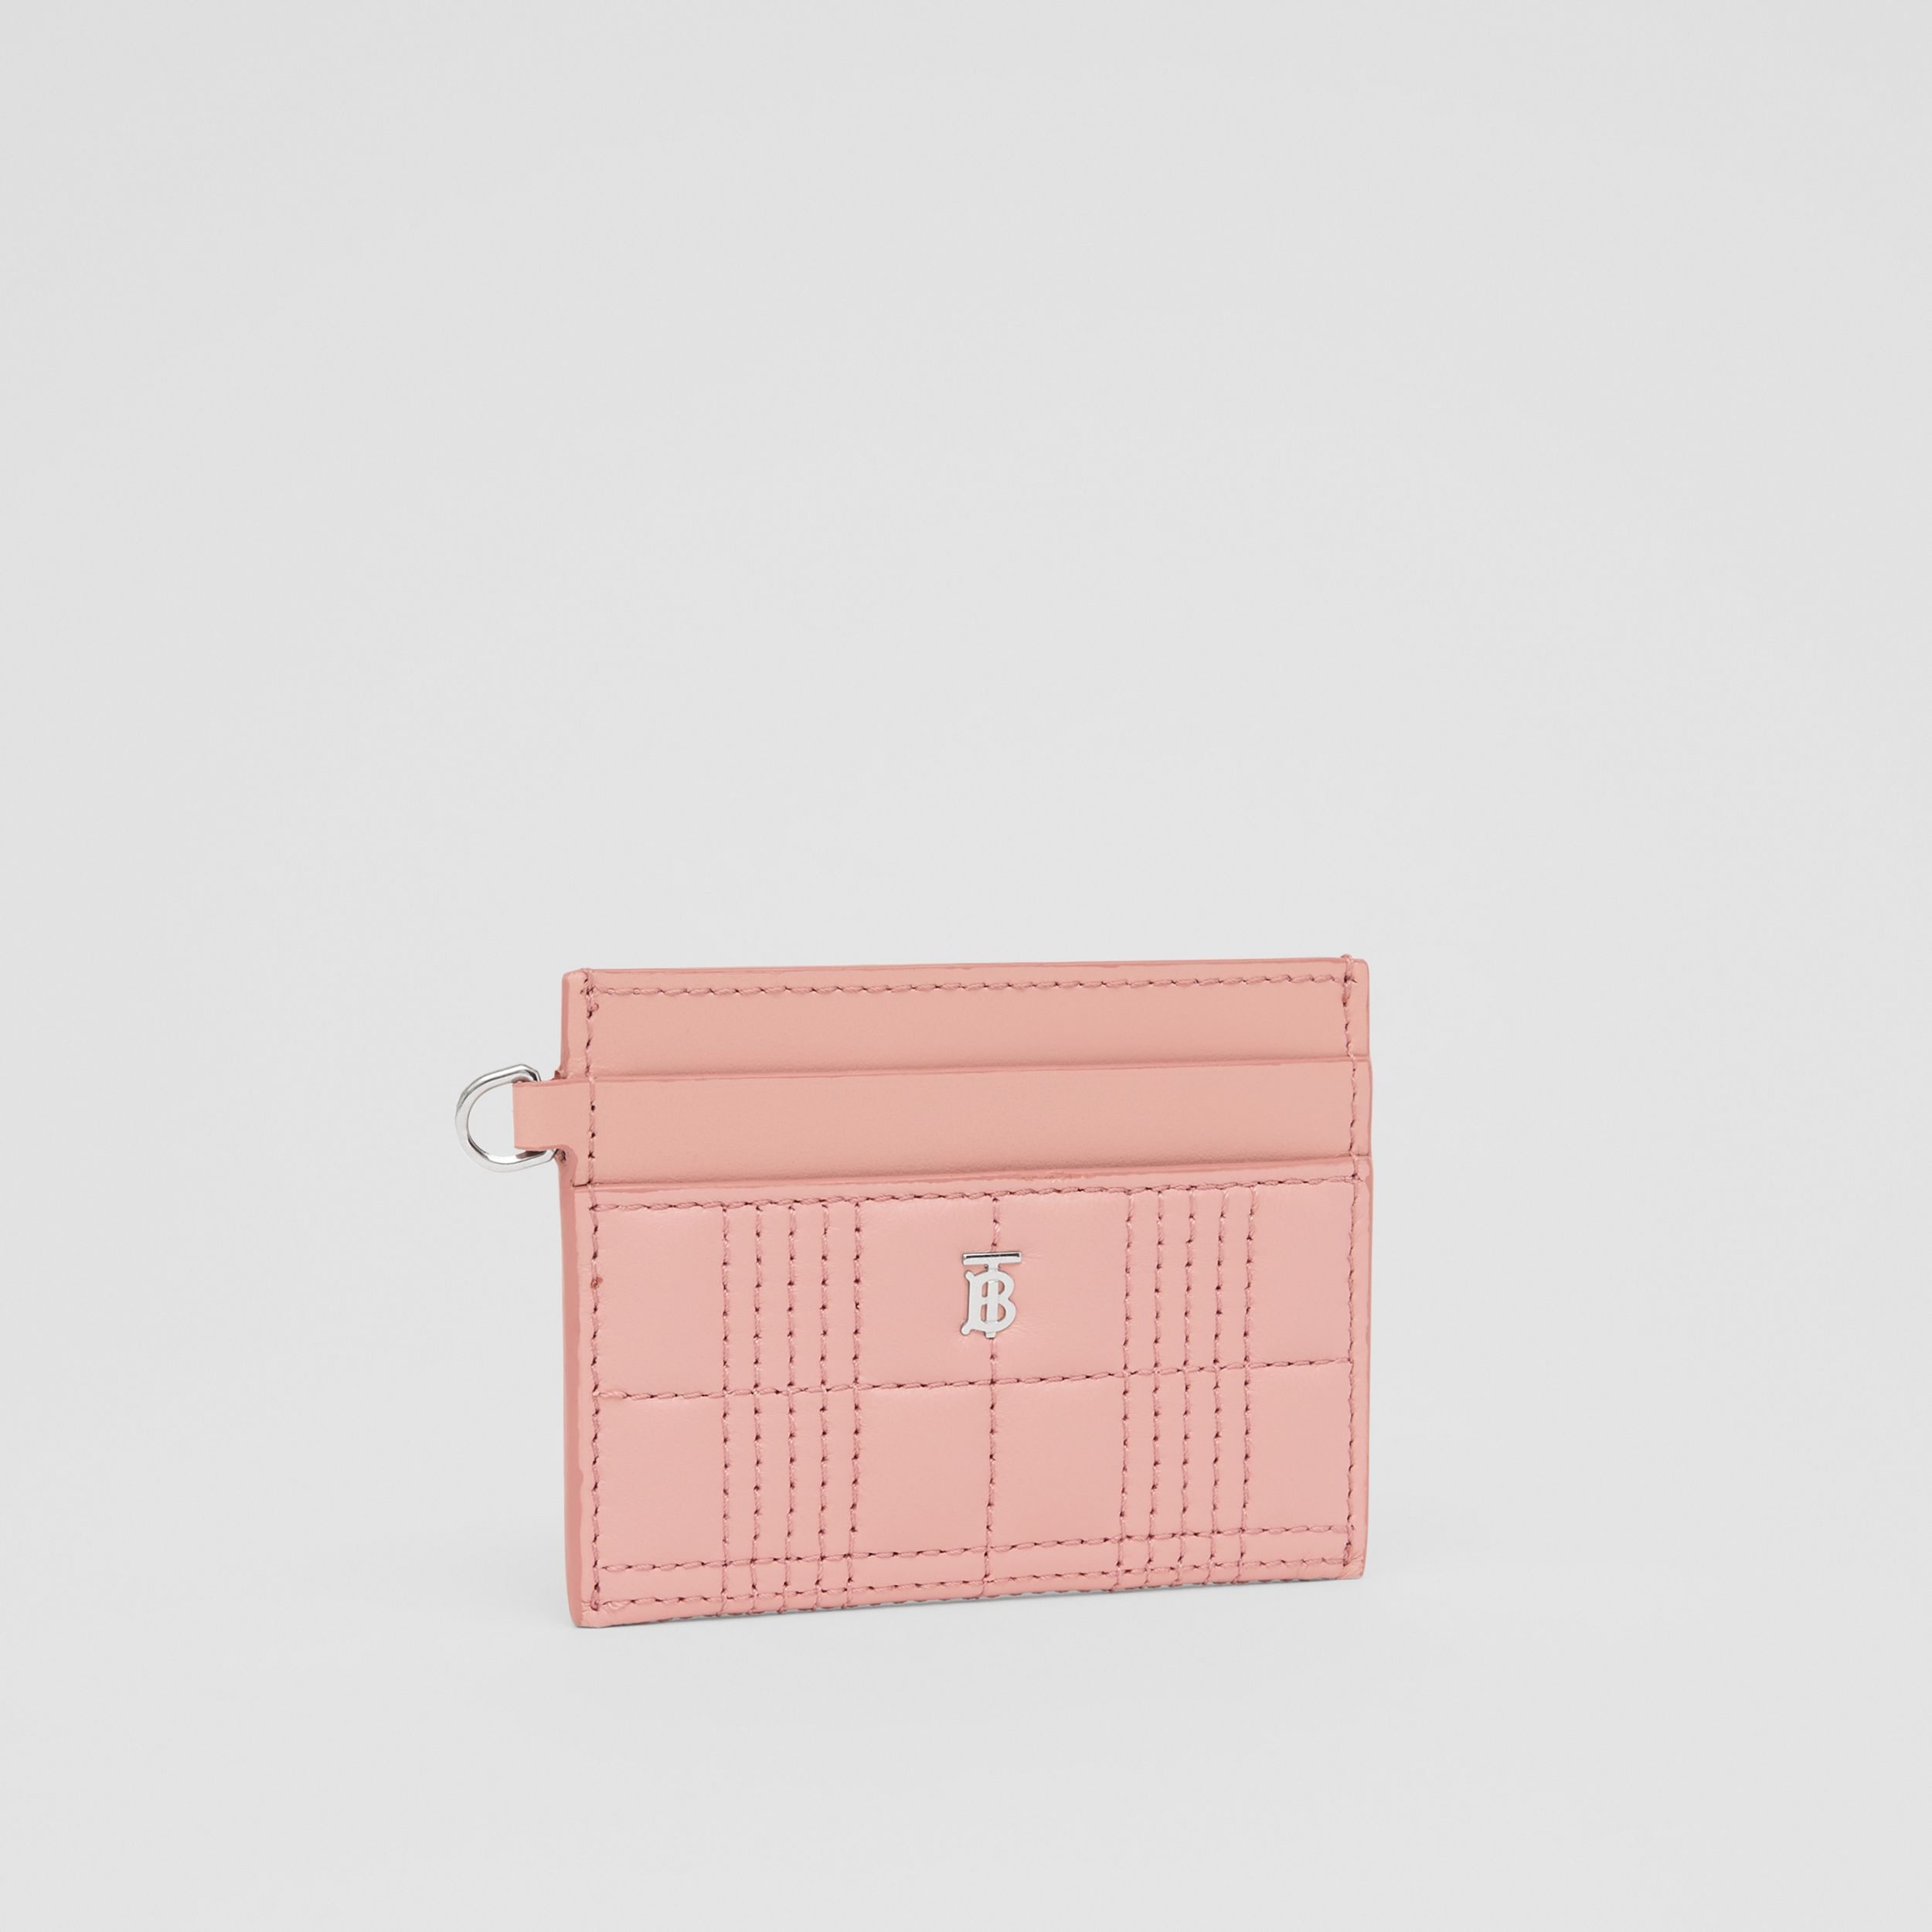 Monogram Motif Quilted Lambskin Card Case in Blush Pink - Women | Burberry - 4